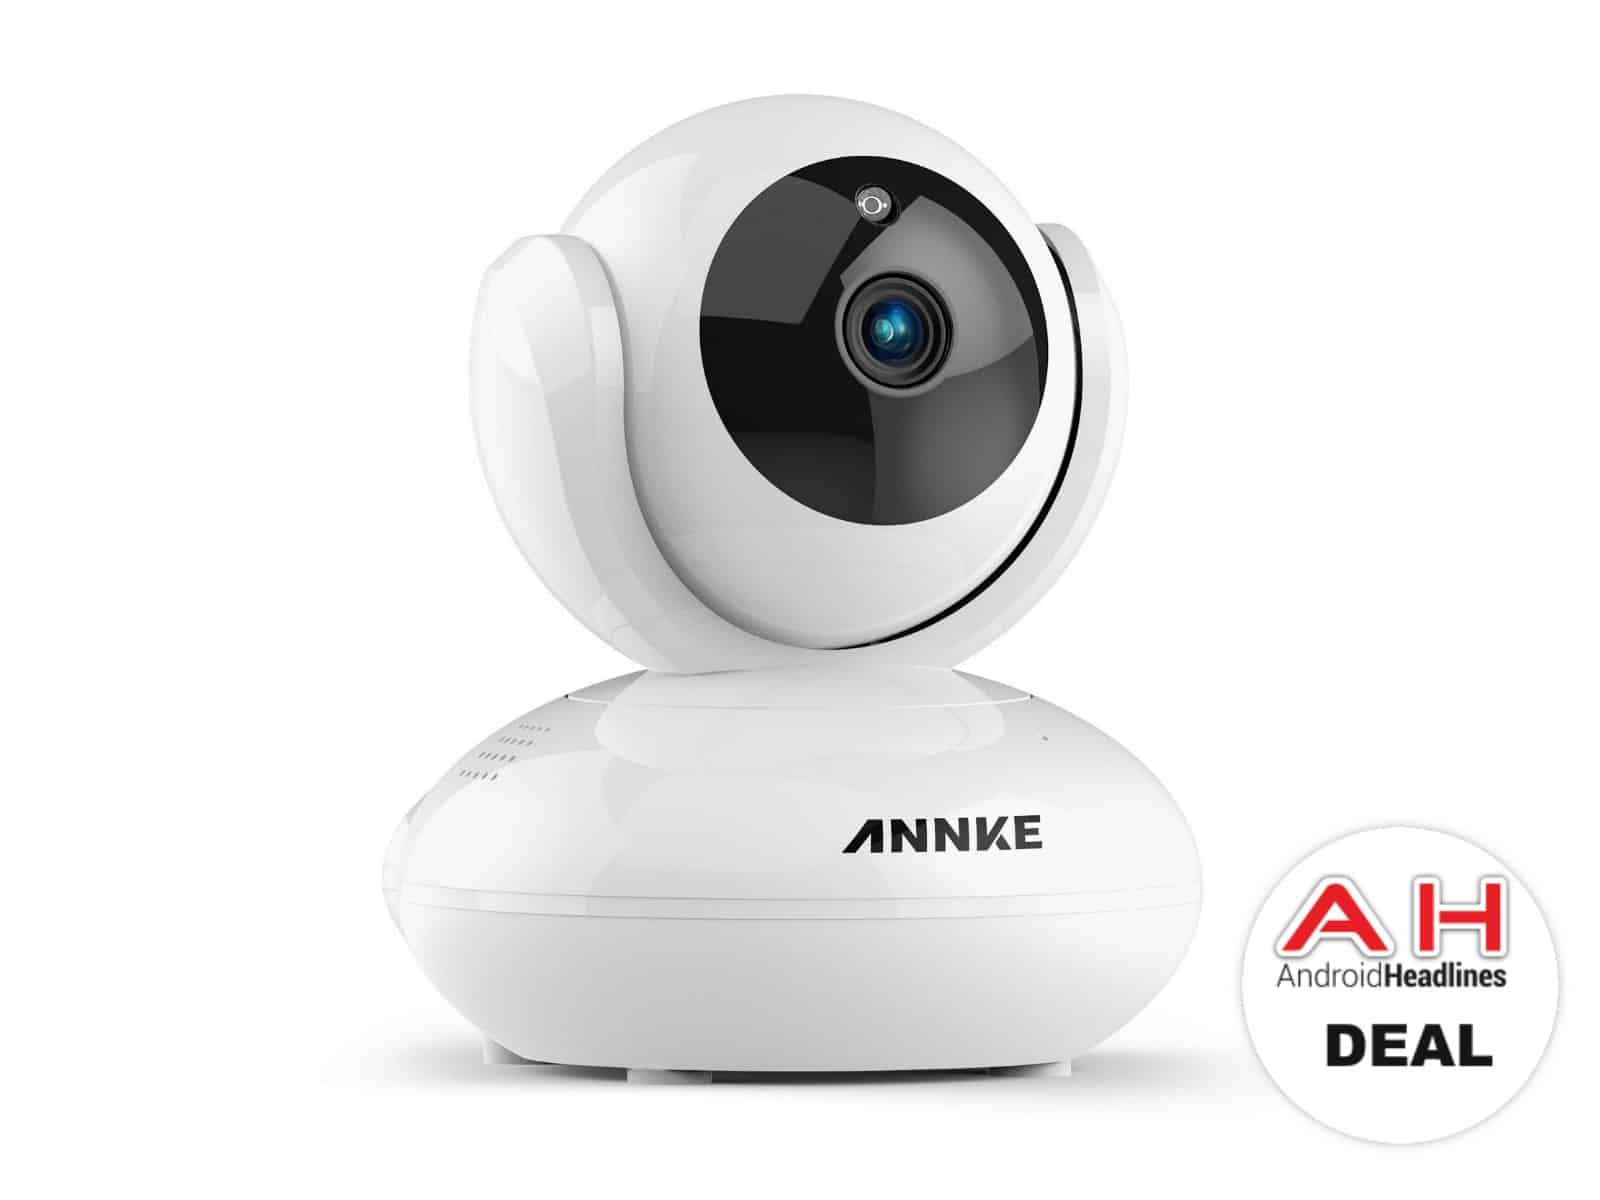 annke 1080p home ip camera